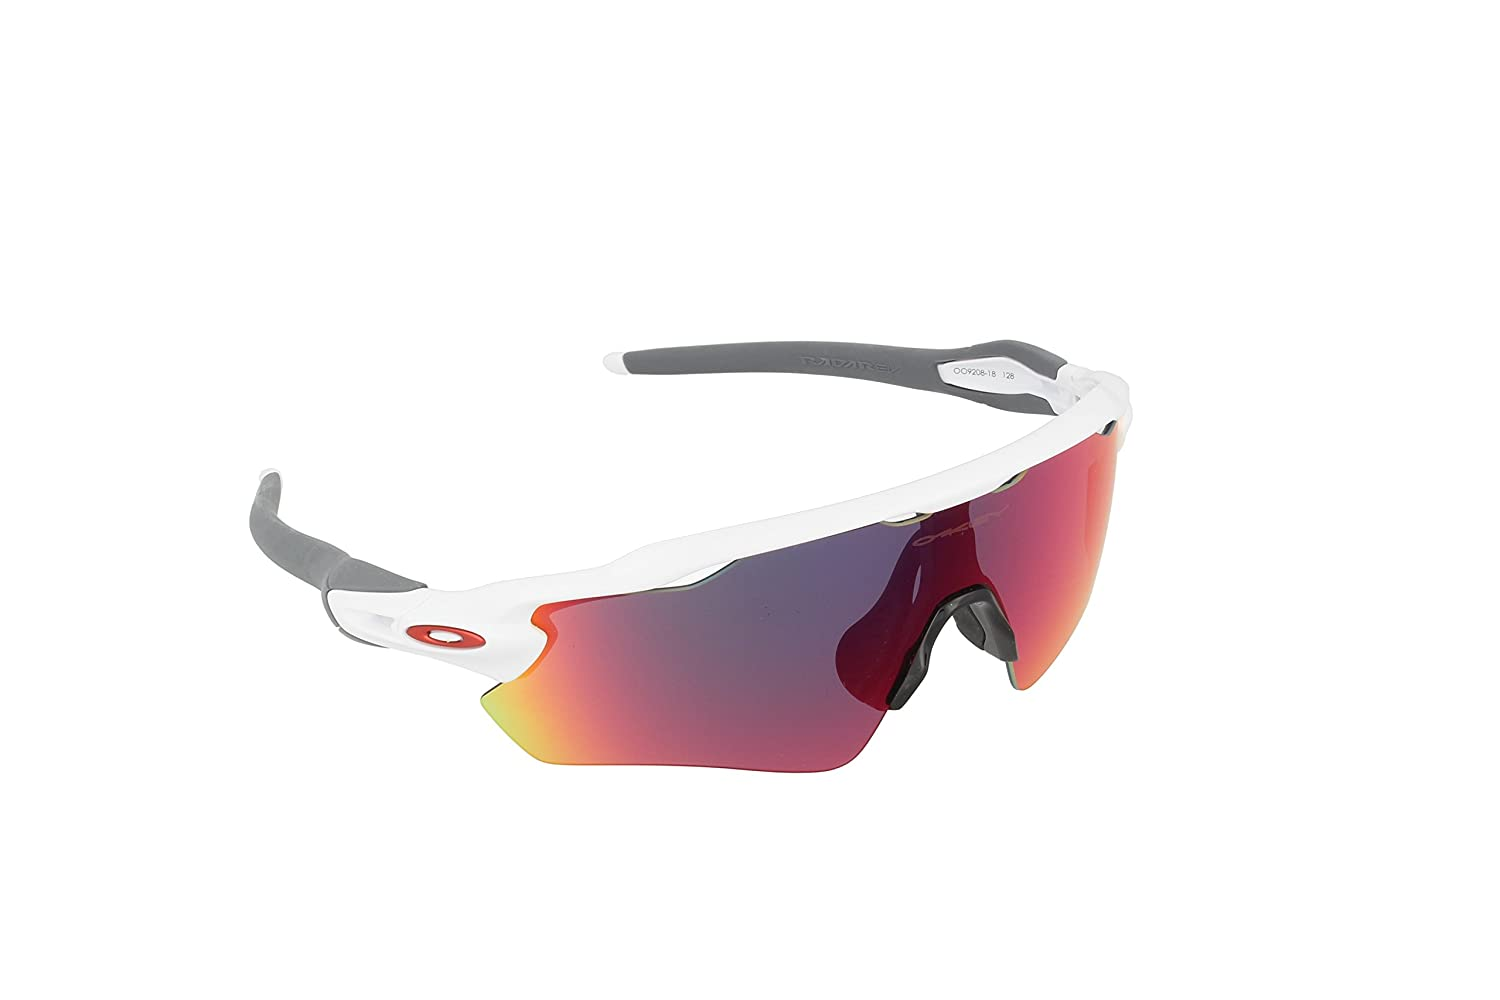 20376e6d68 Oakley Men s s Radar Ev Path 920818 Sunglasses